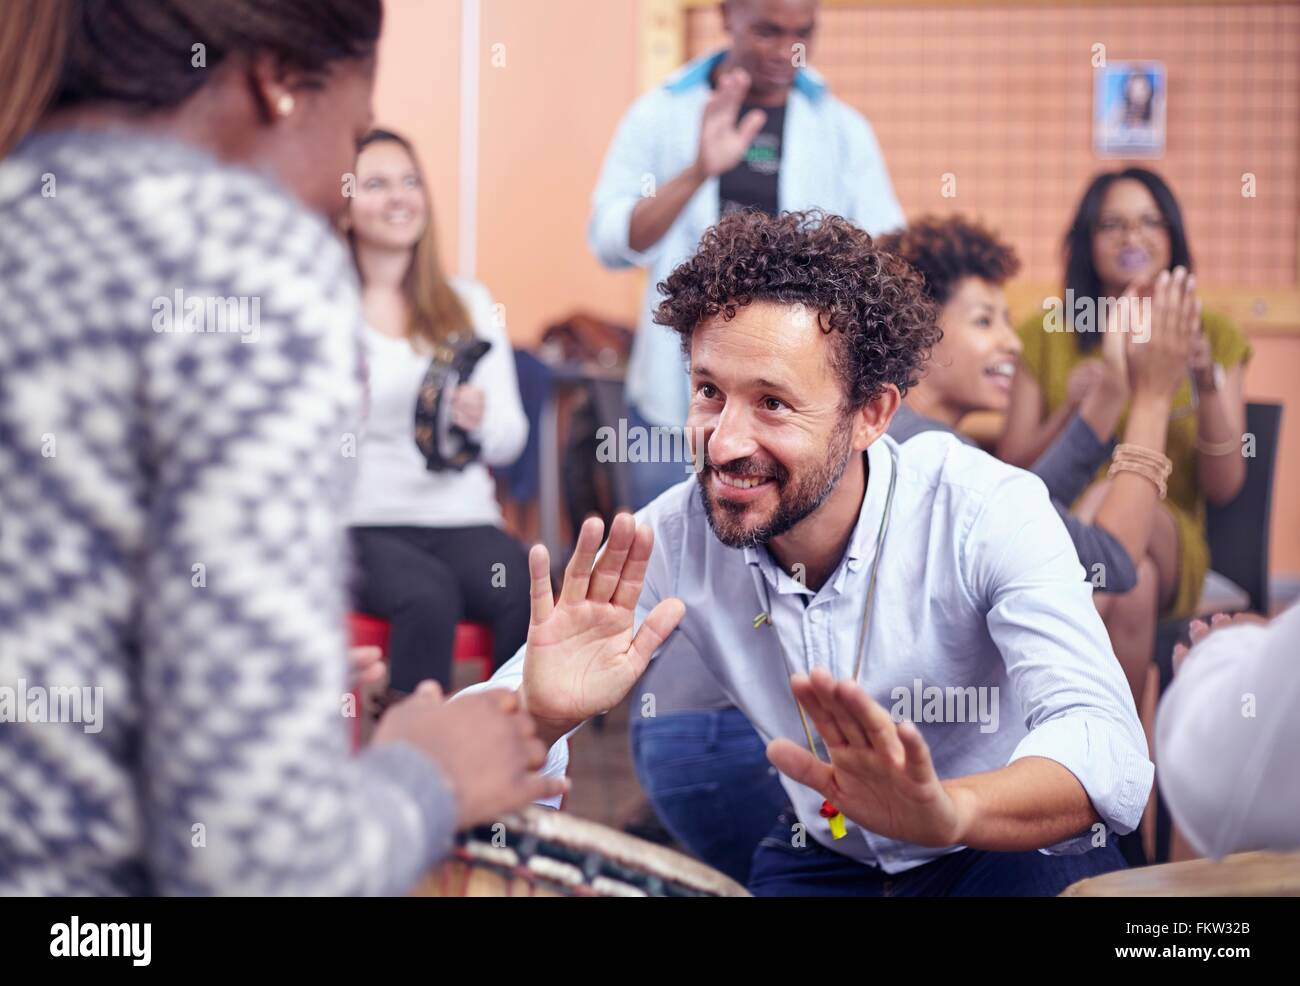 Friends playing musical instruments and dancing, smiling - Stock Image